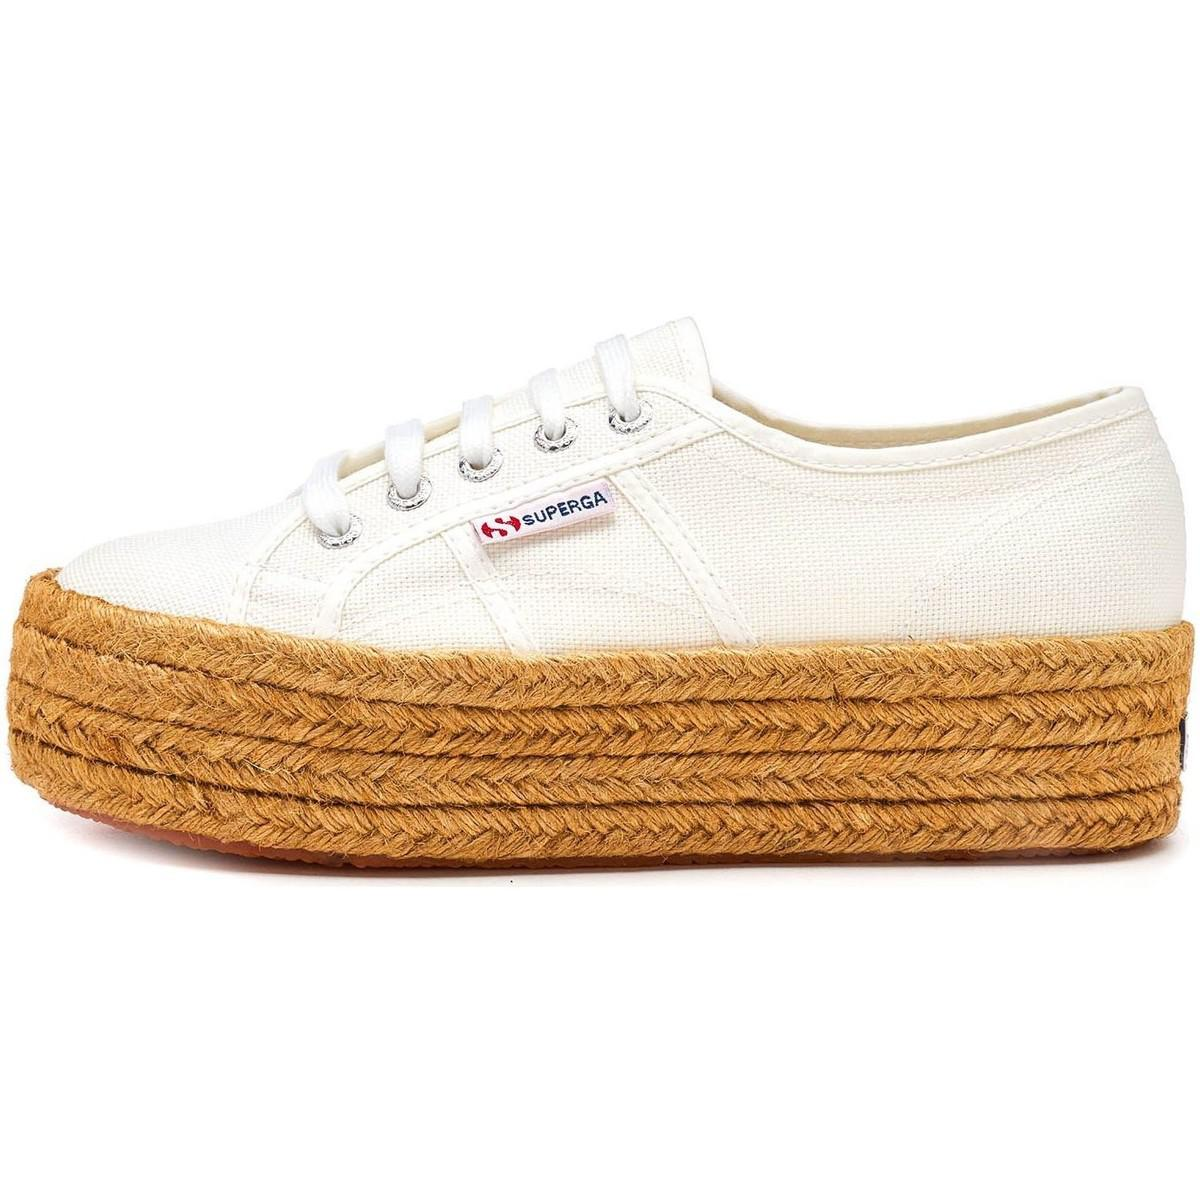 09b72388d80 Superga - 2790 Cotropew Platform Plimsoll Shoes In White 901 Women s  Espadrilles   Casual Shoes In. View fullscreen